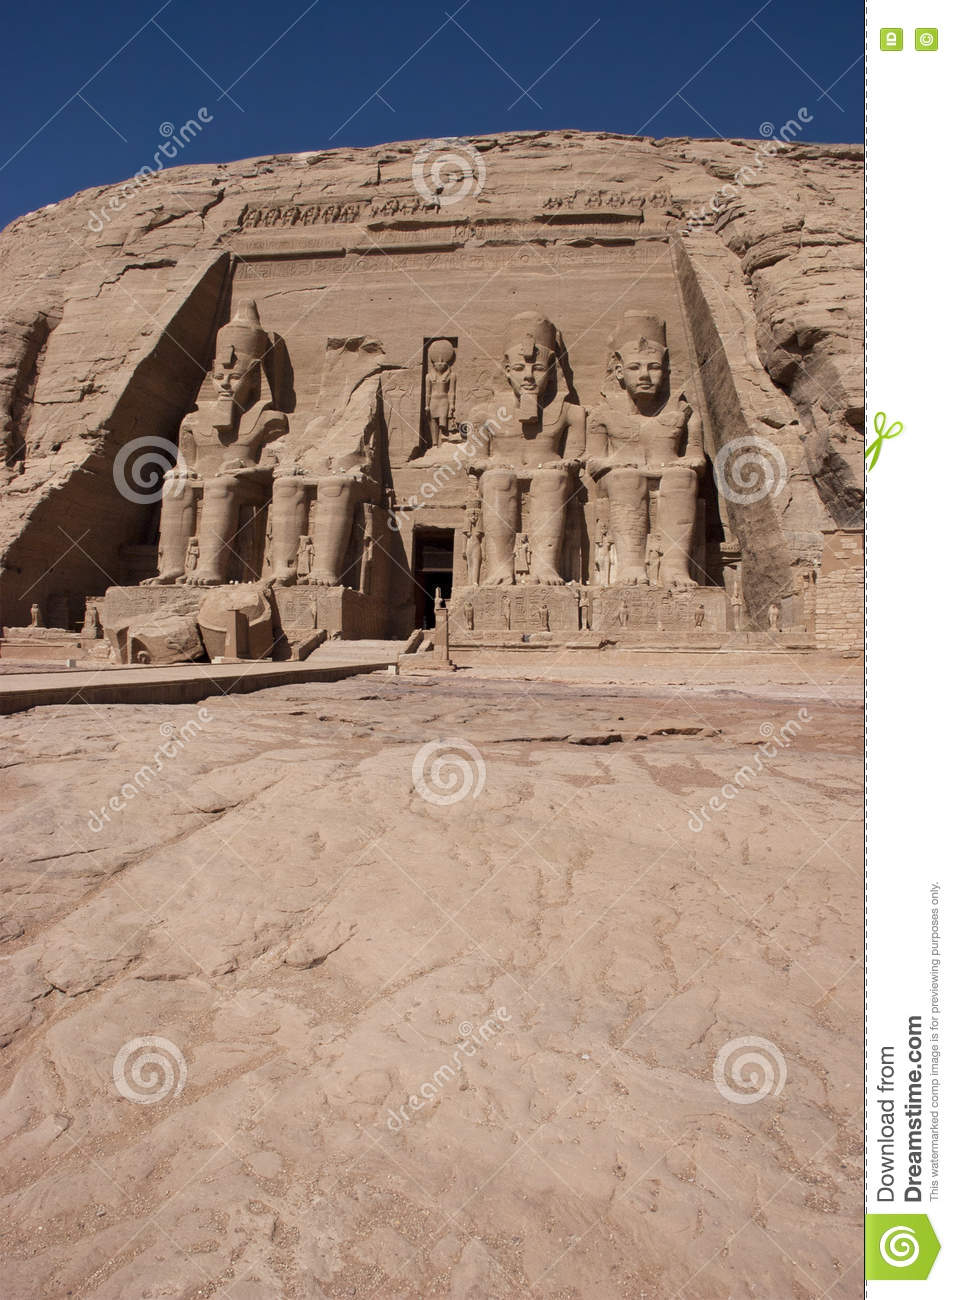 Abu simbel ancient egypt vacation travel stock photo